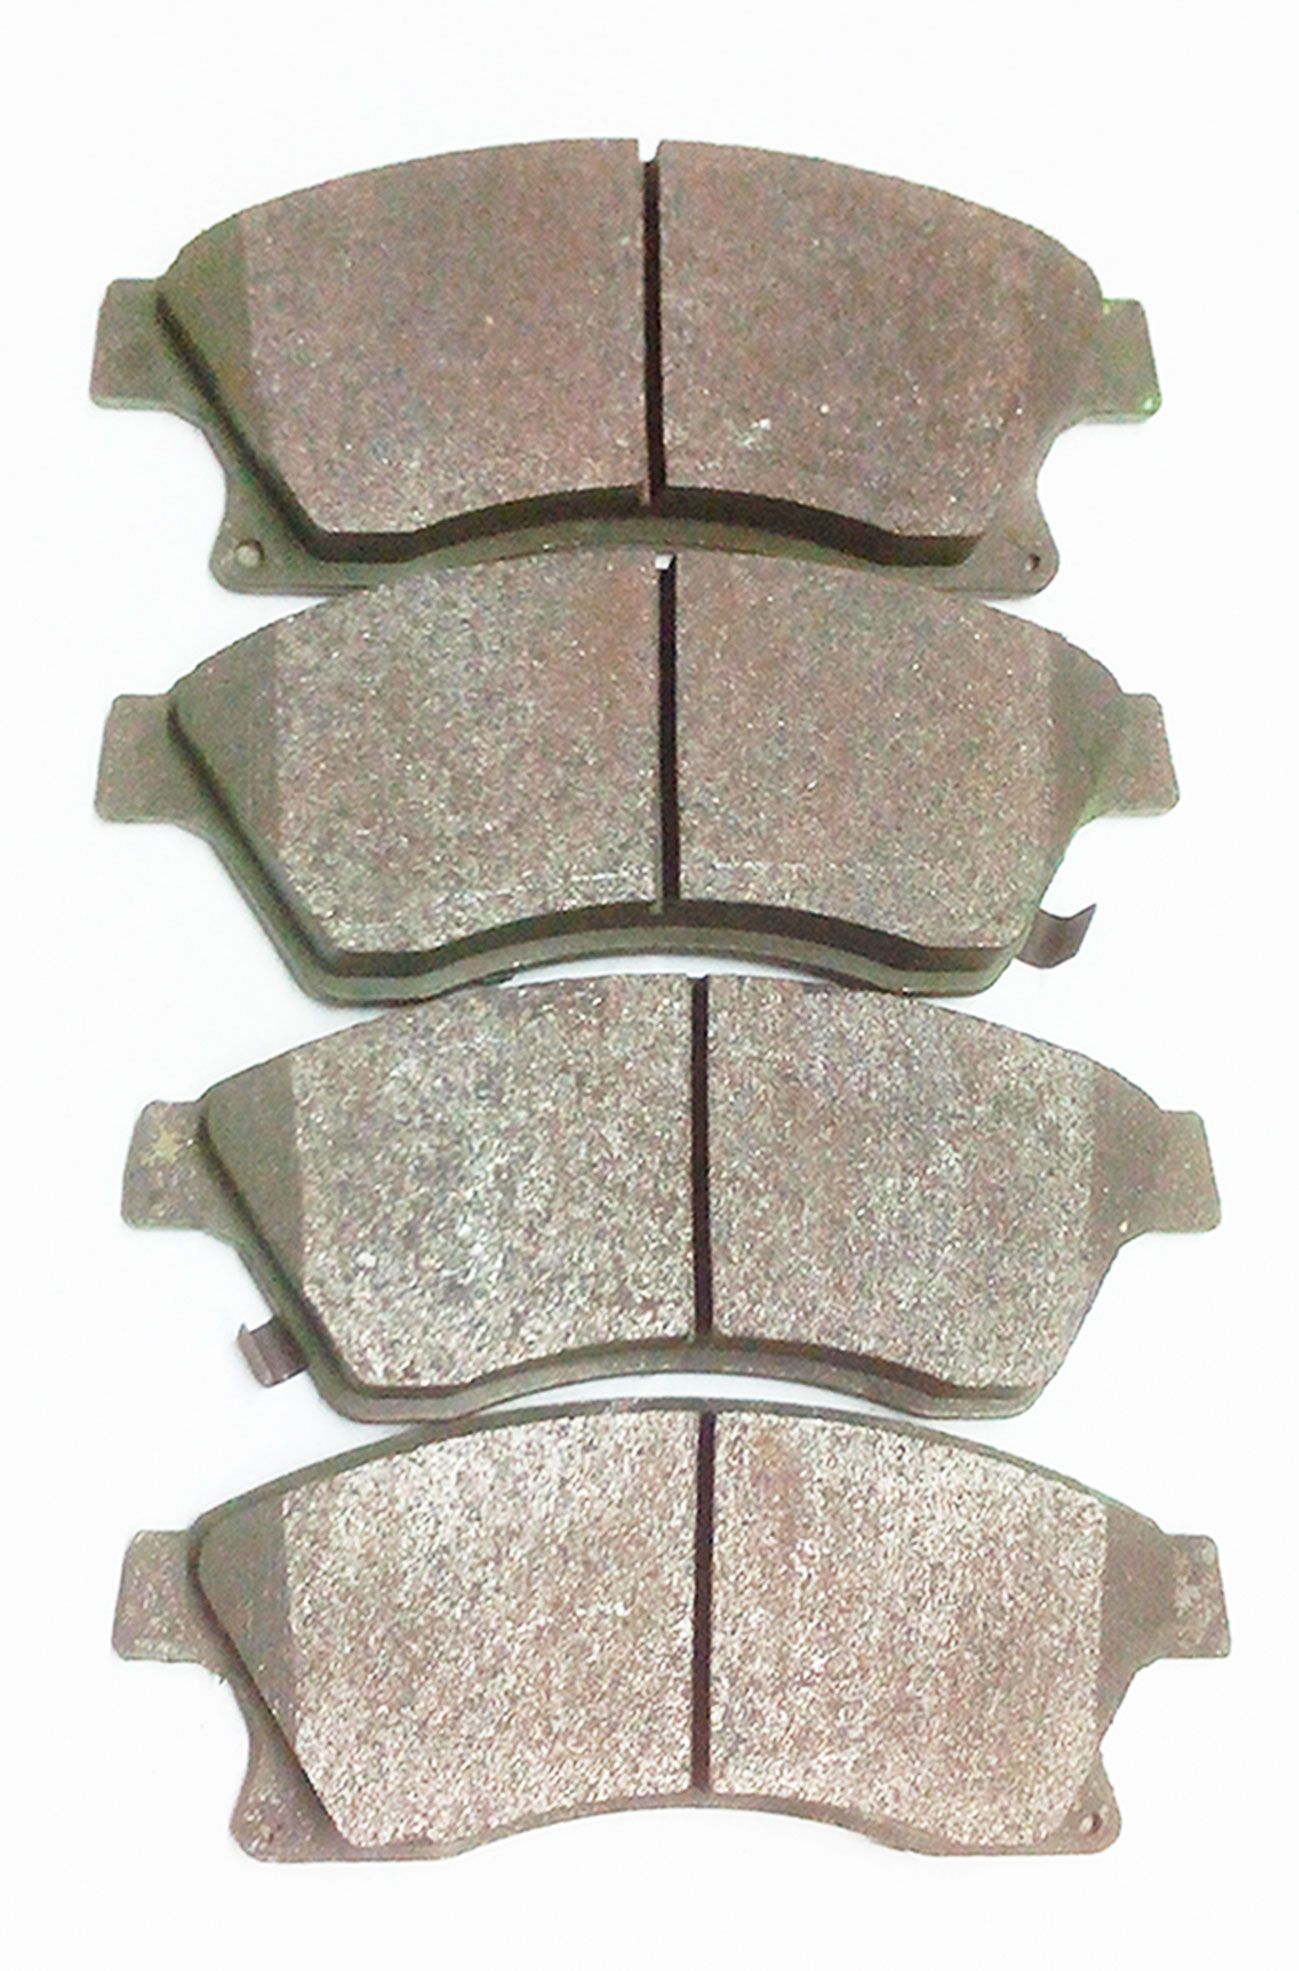 Brake pad-TATA SAFARI (FRONT)